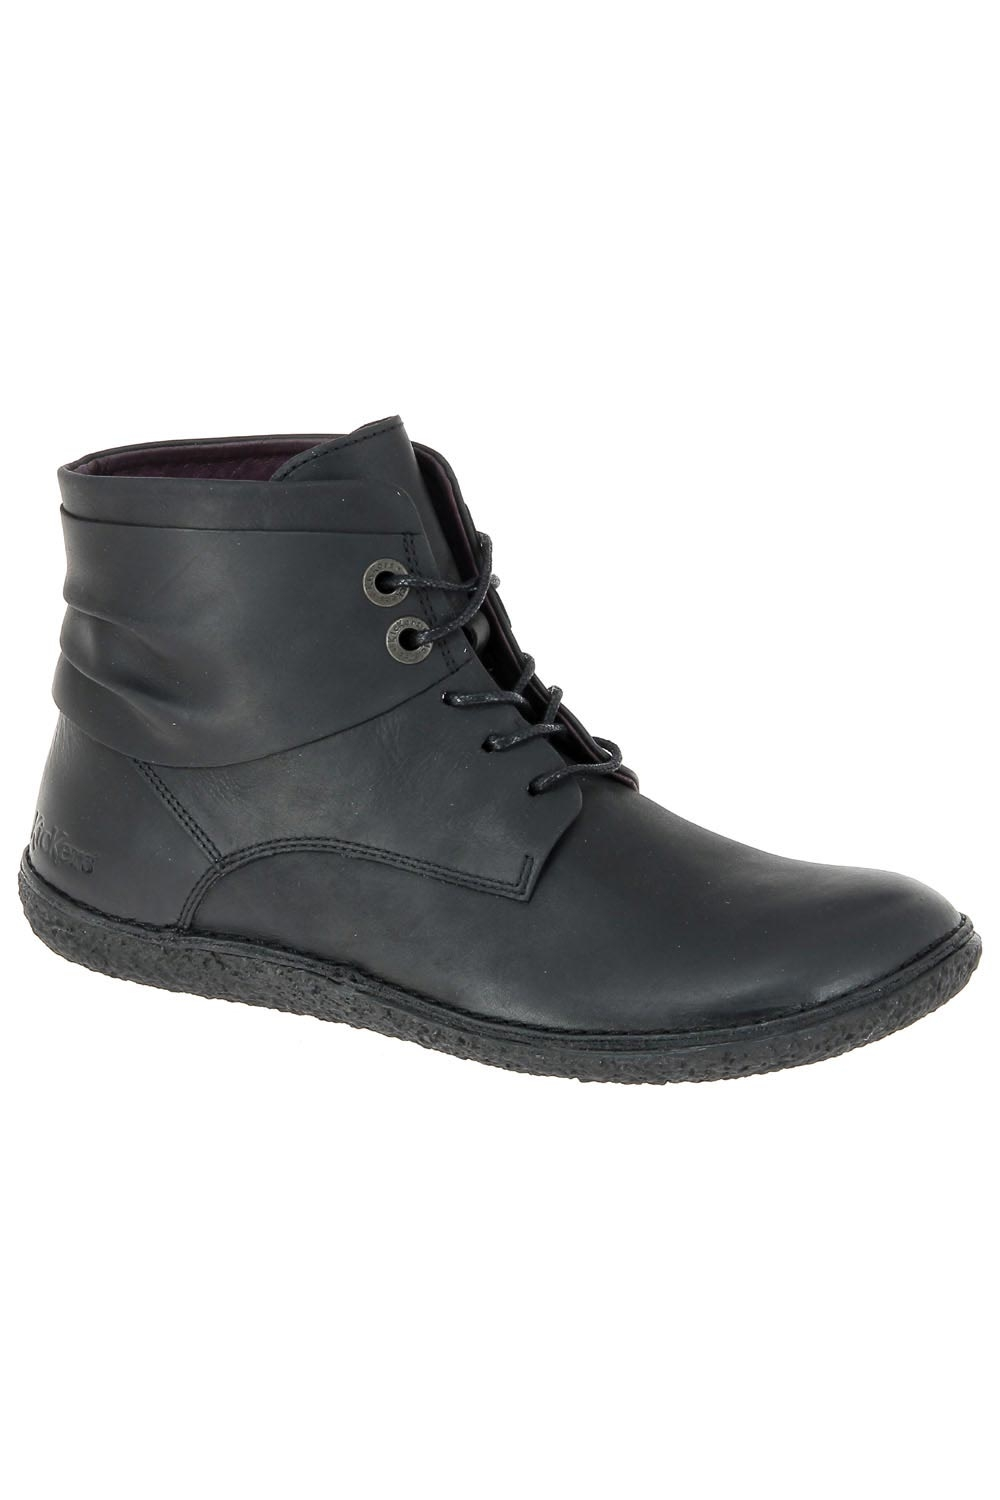 88a9bb8efd0805 Bottines casual kickers noir hobylow chaussures femme kickers